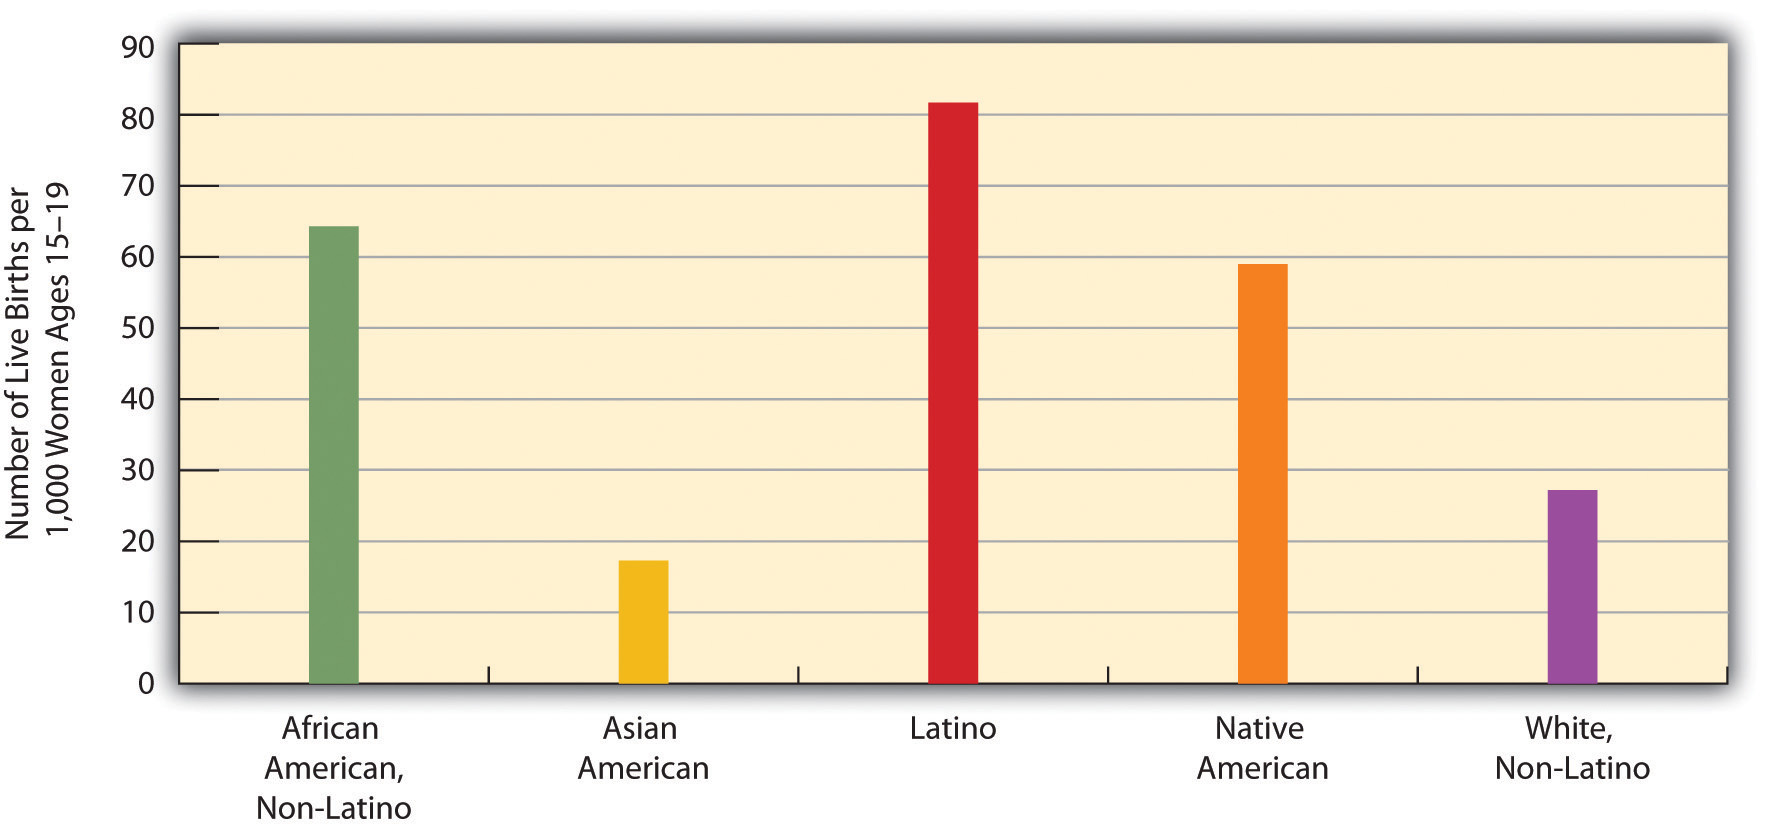 Race, Ethnicity, and US Teenage Fertility Rates, 2007